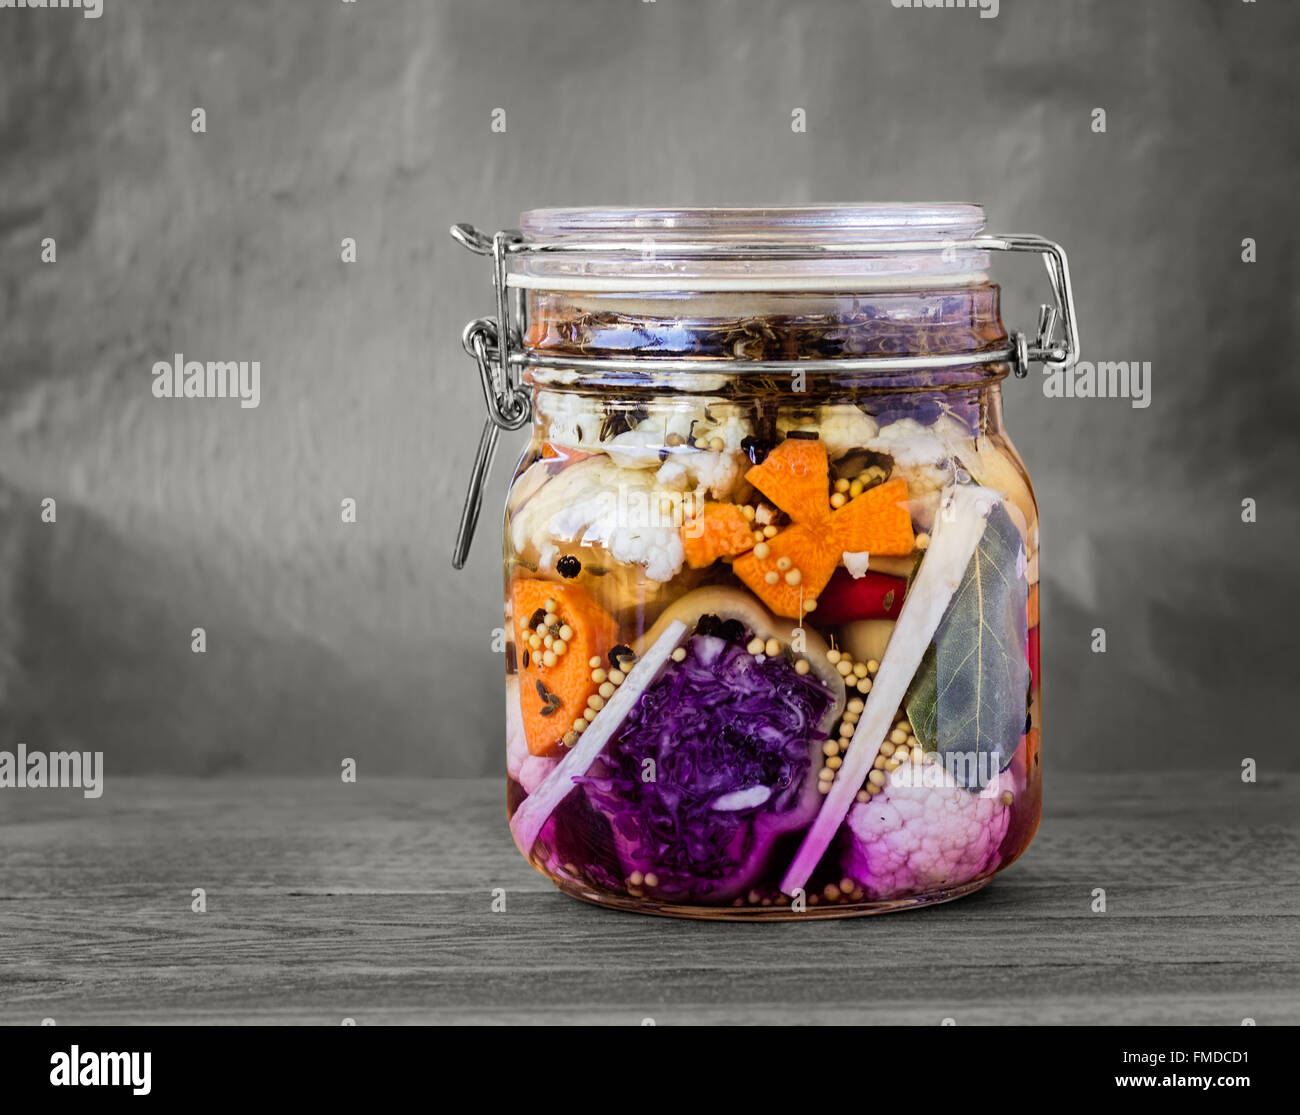 Jar of assorted brined lacto-fermented pickles on a wooden table with desaturated background. - Stock Image